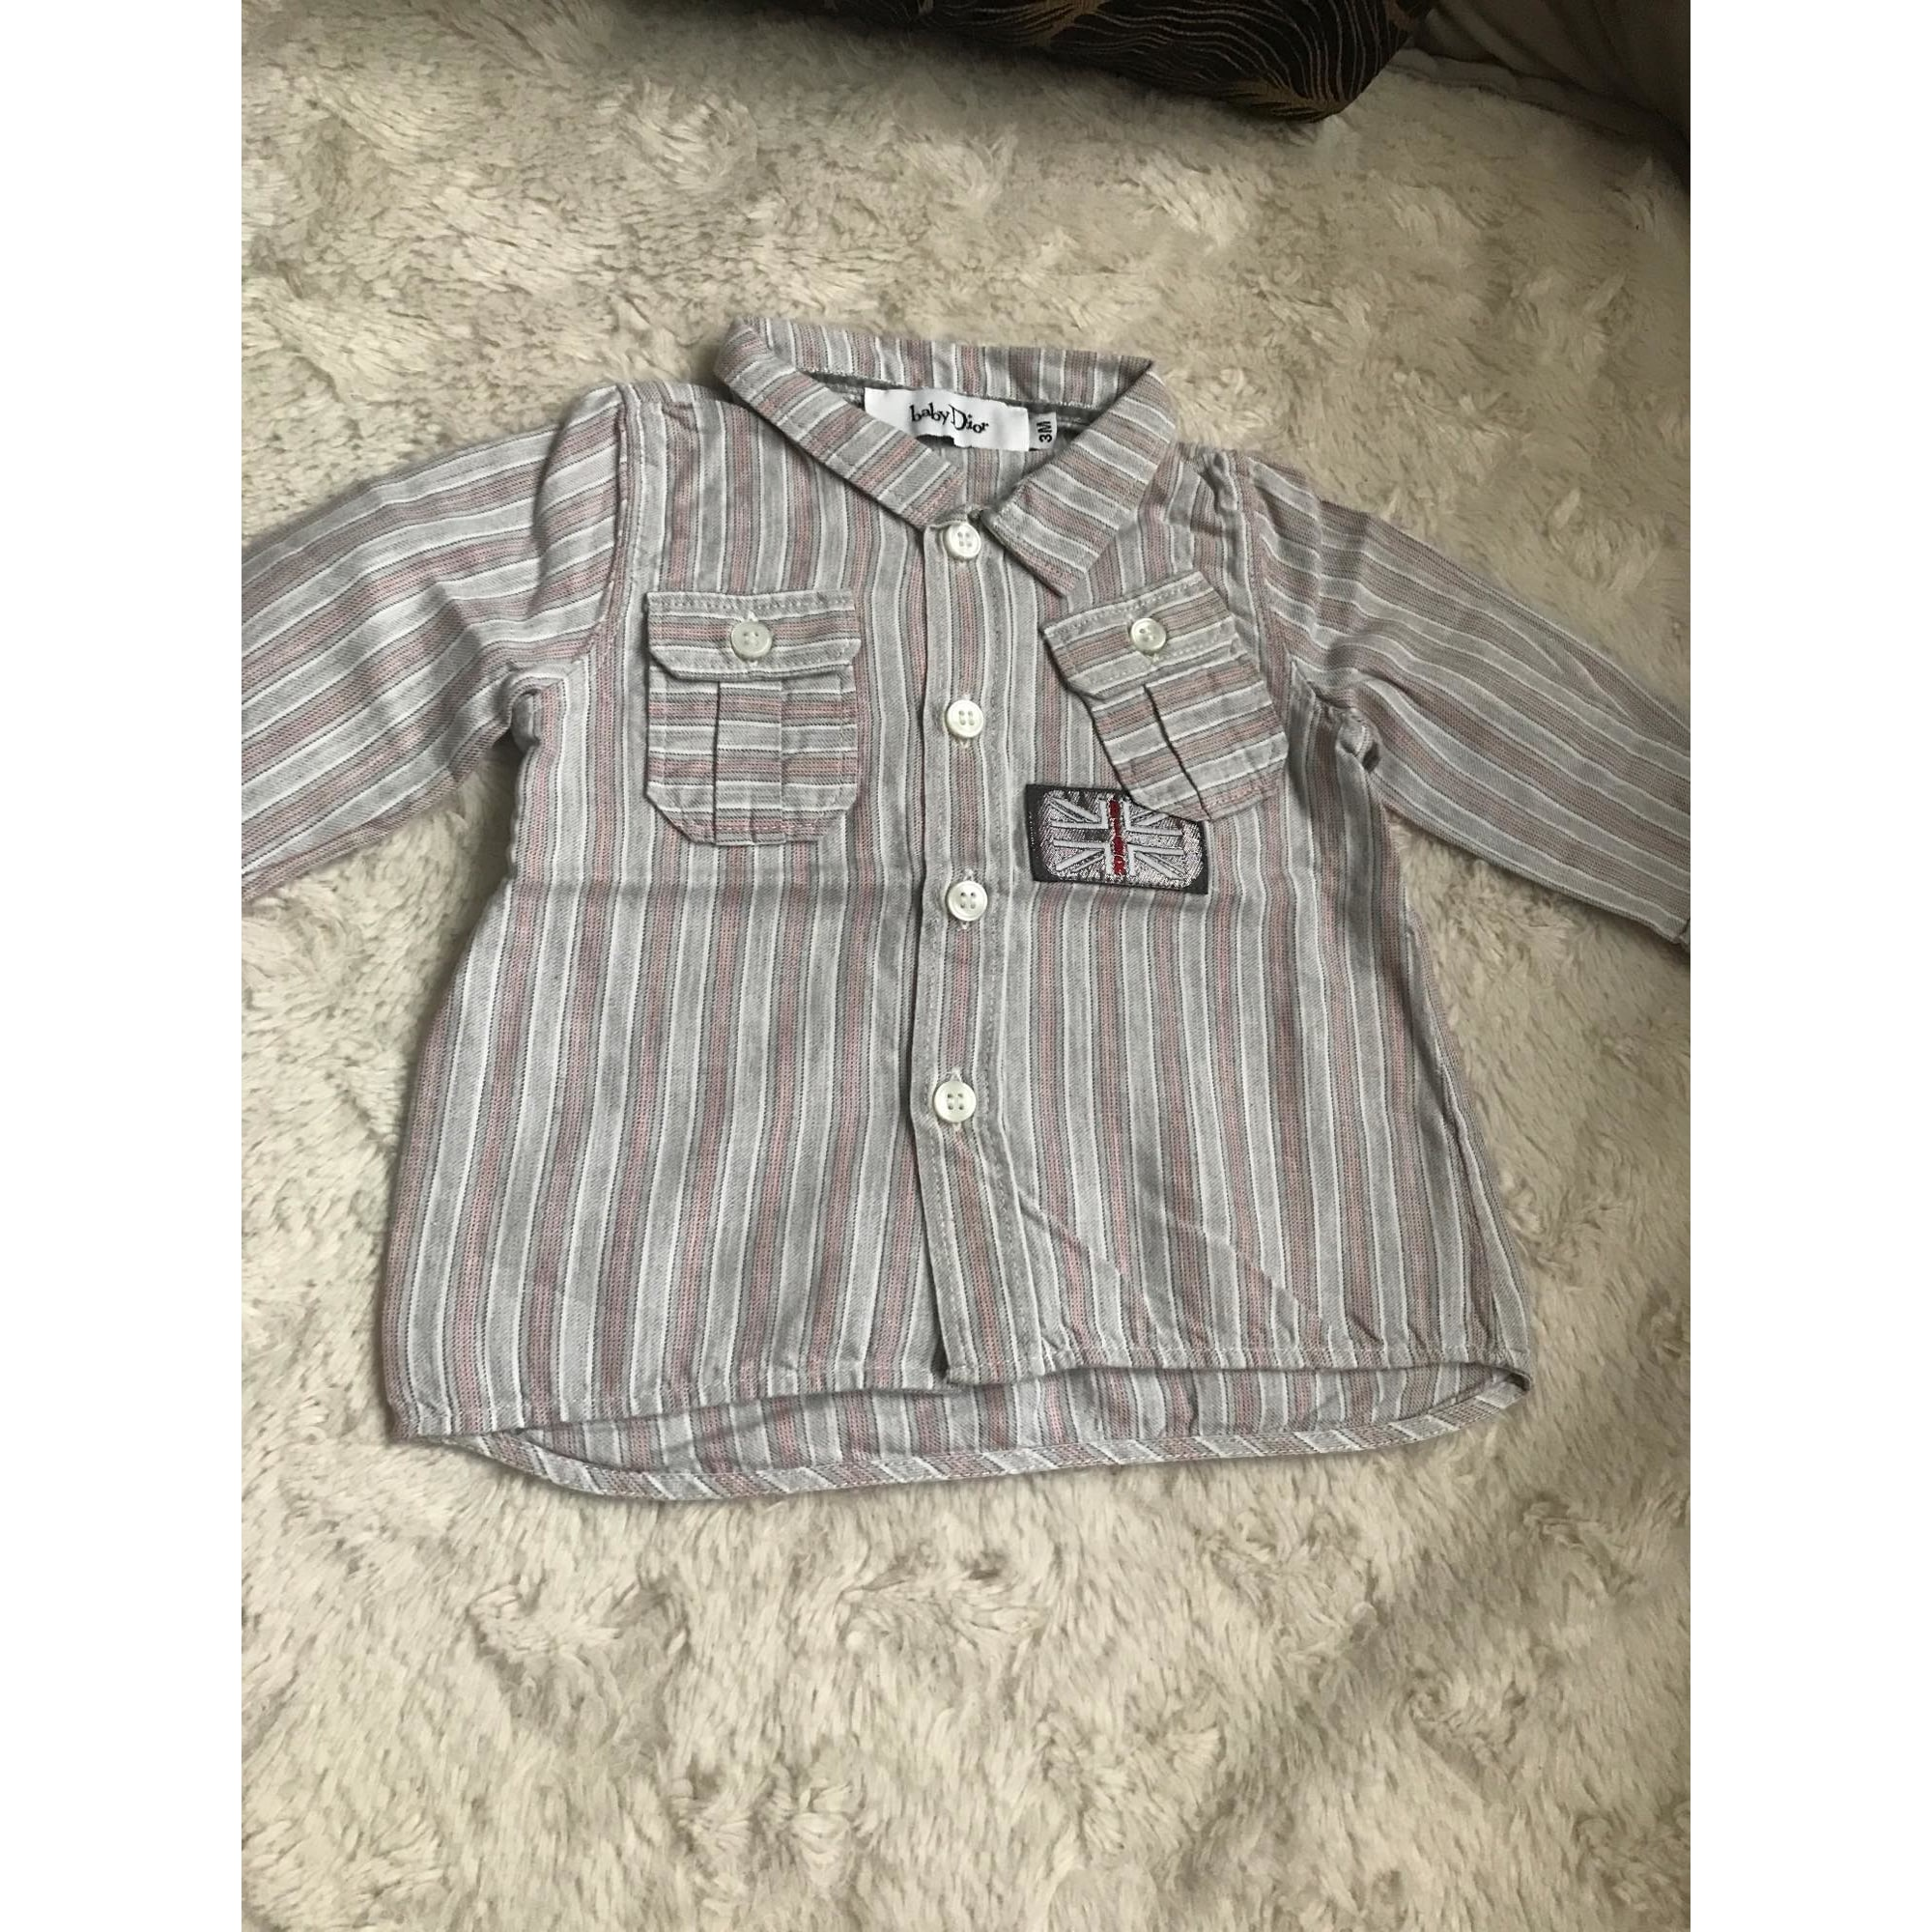 Chemise BABY DIOR Gris, anthracite